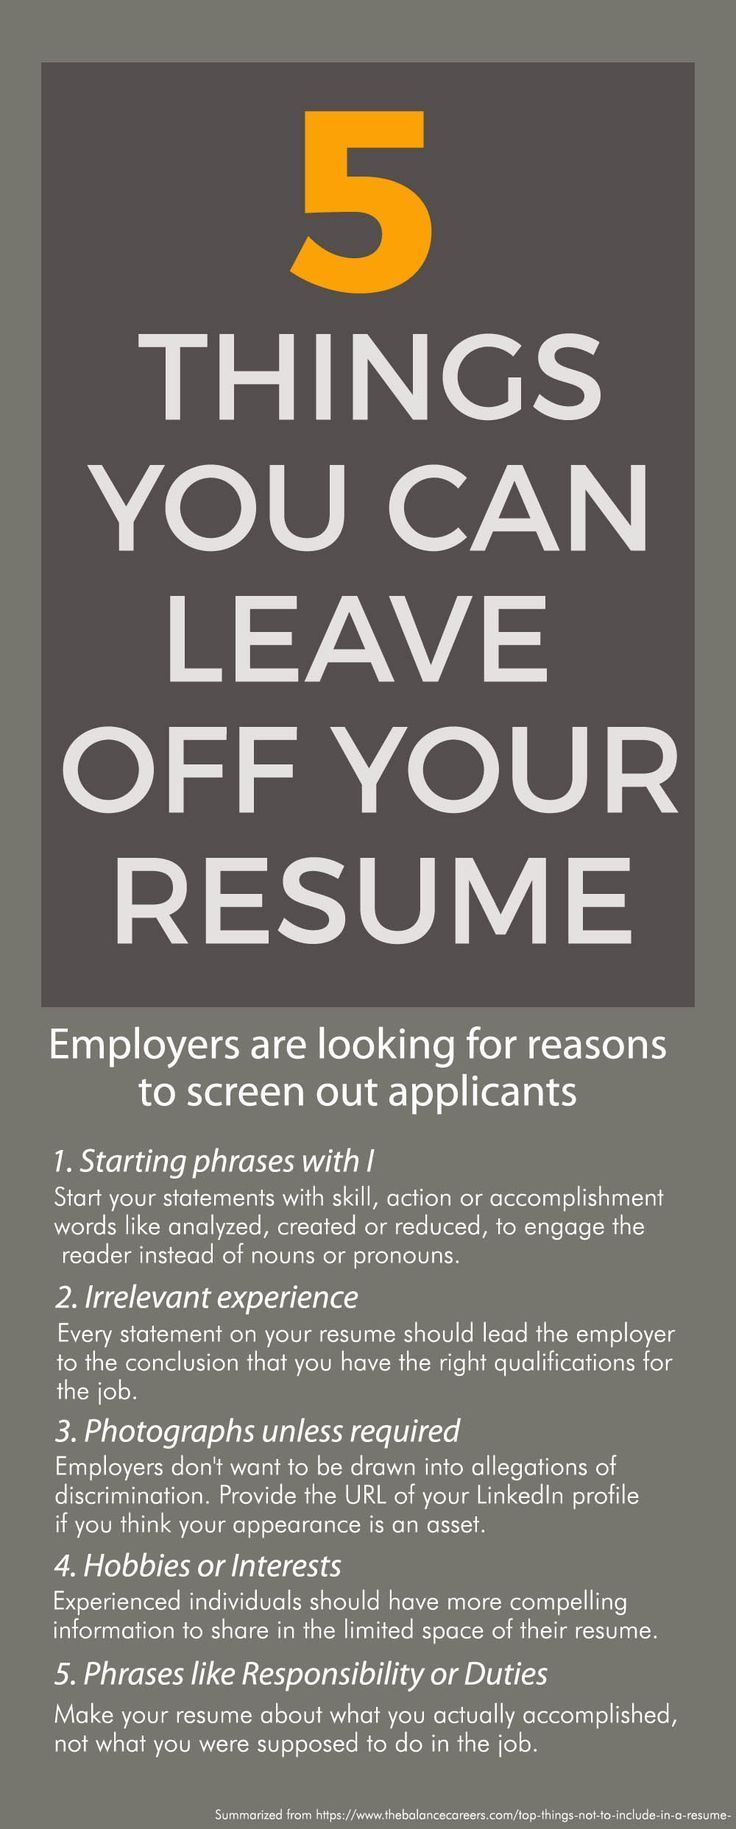 Employers are looking for reasons to screen out applicants